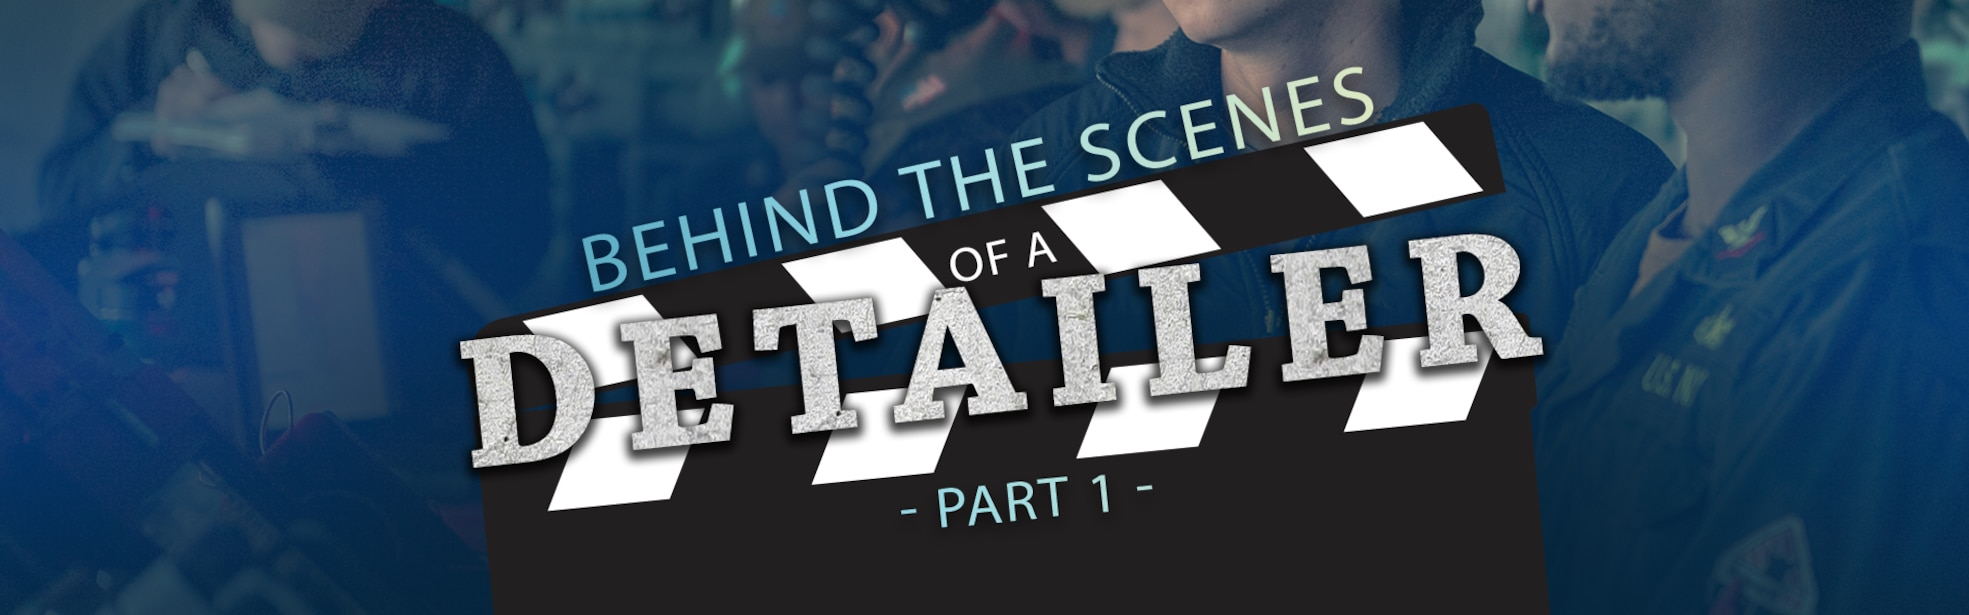 Behind the Scenes of a Detailer Part 1 written over a Hollywood style clapper